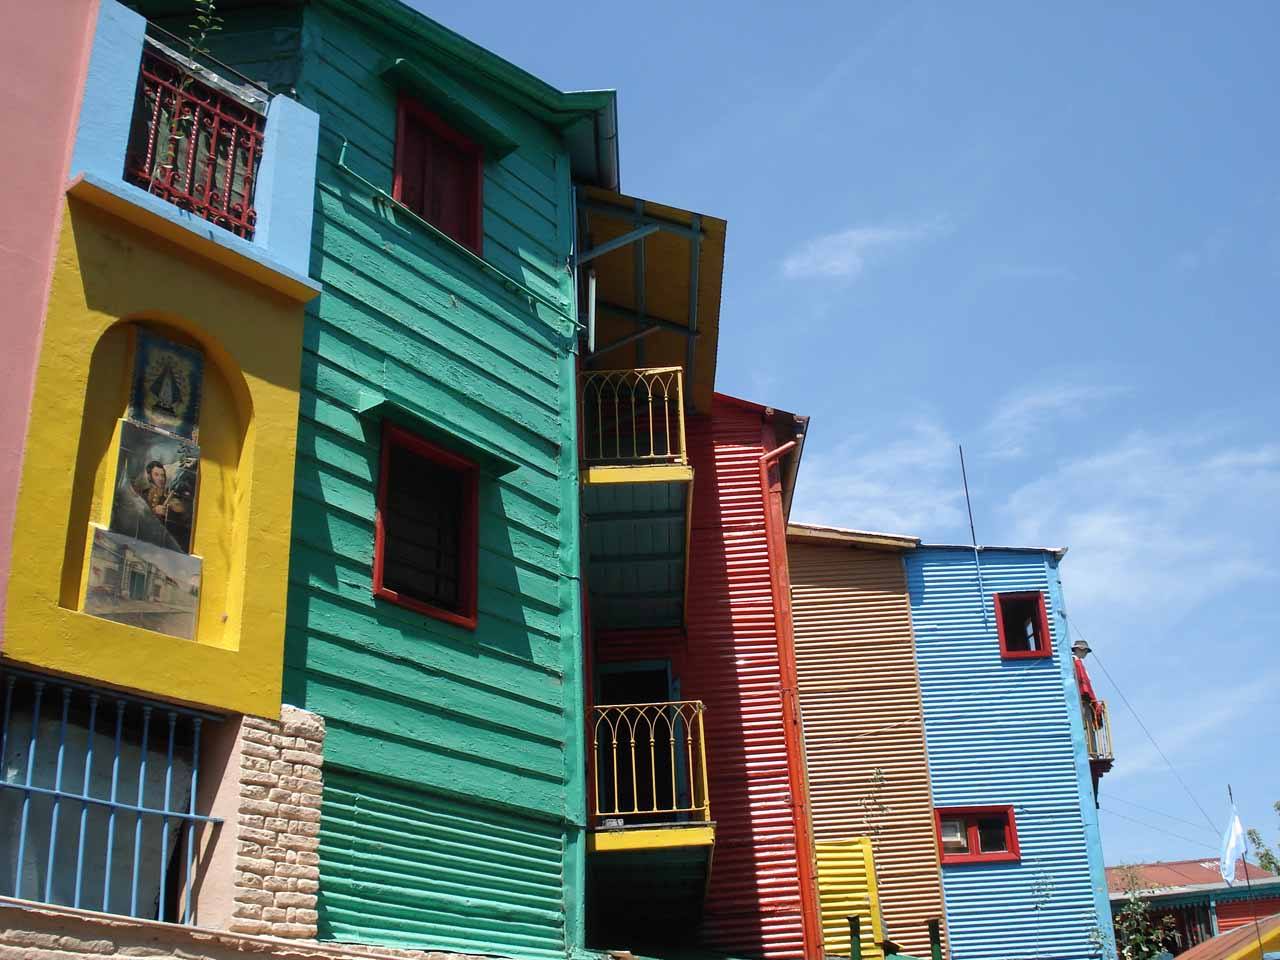 Colorful houses in El Caminito